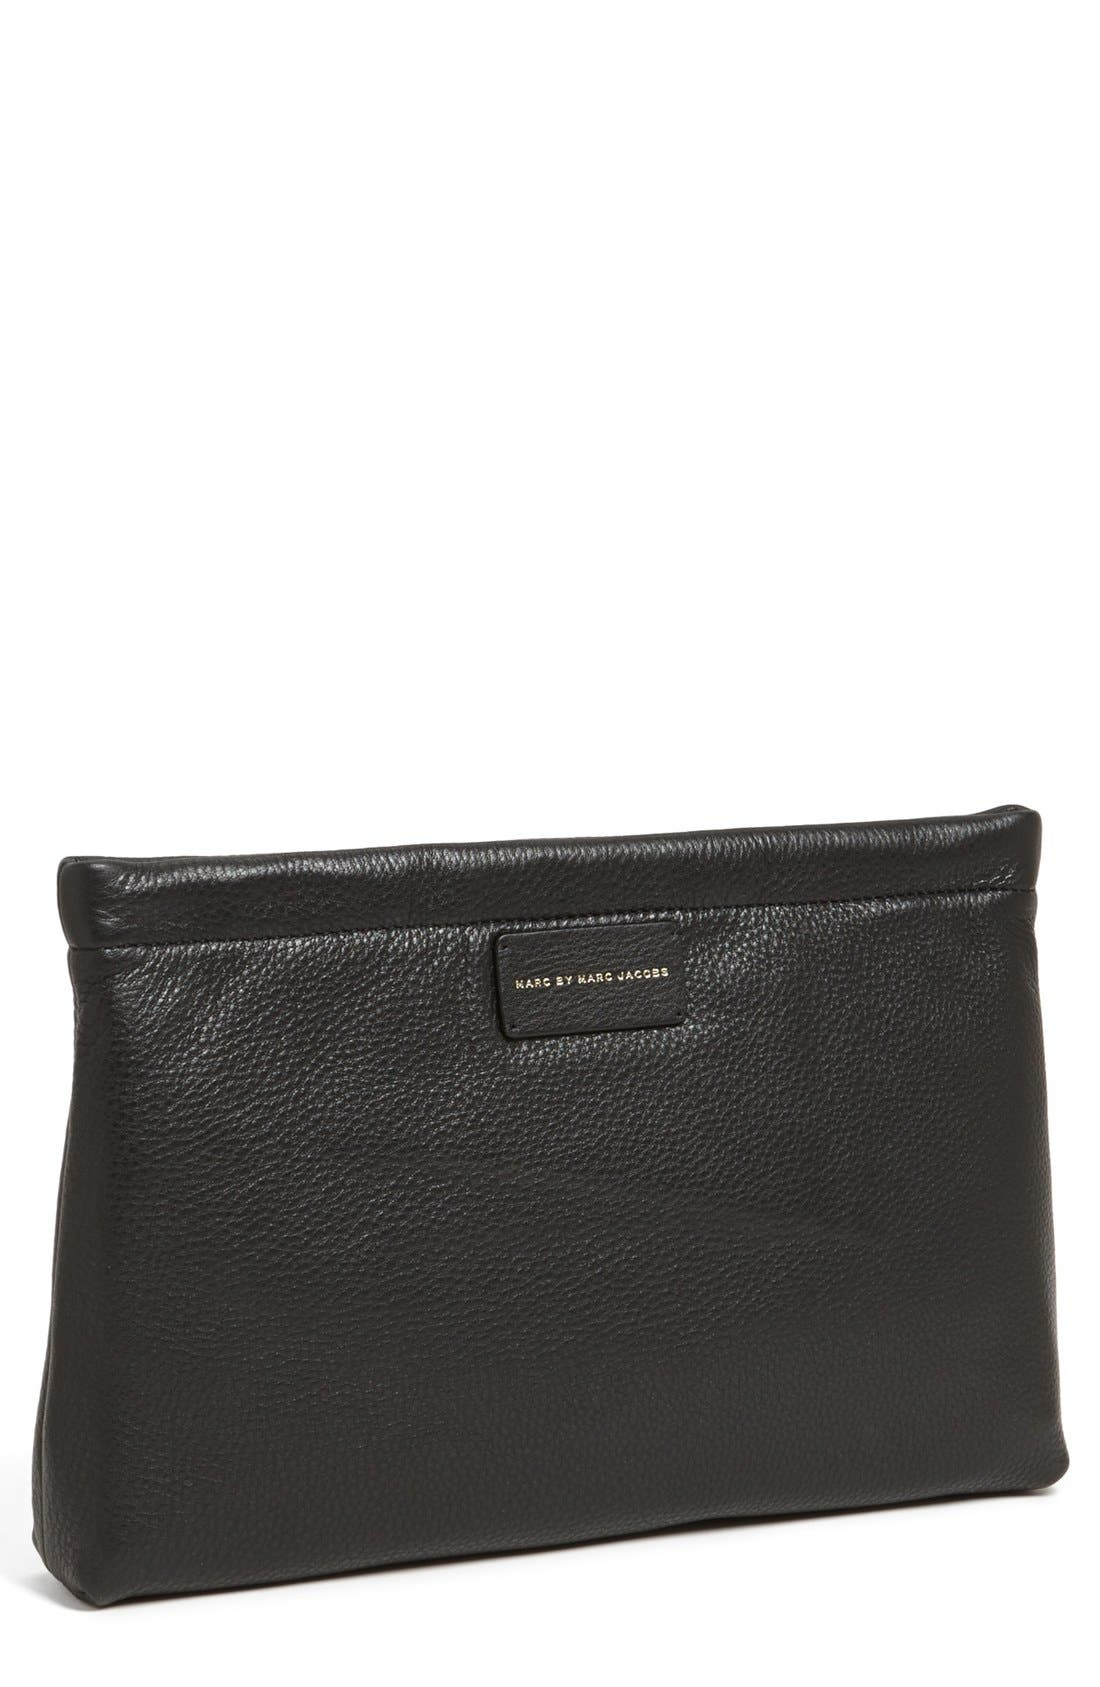 MARC BY MARC JACOBS 'Can't Clutch This - Large' Clutch,                             Main thumbnail 1, color,                             001